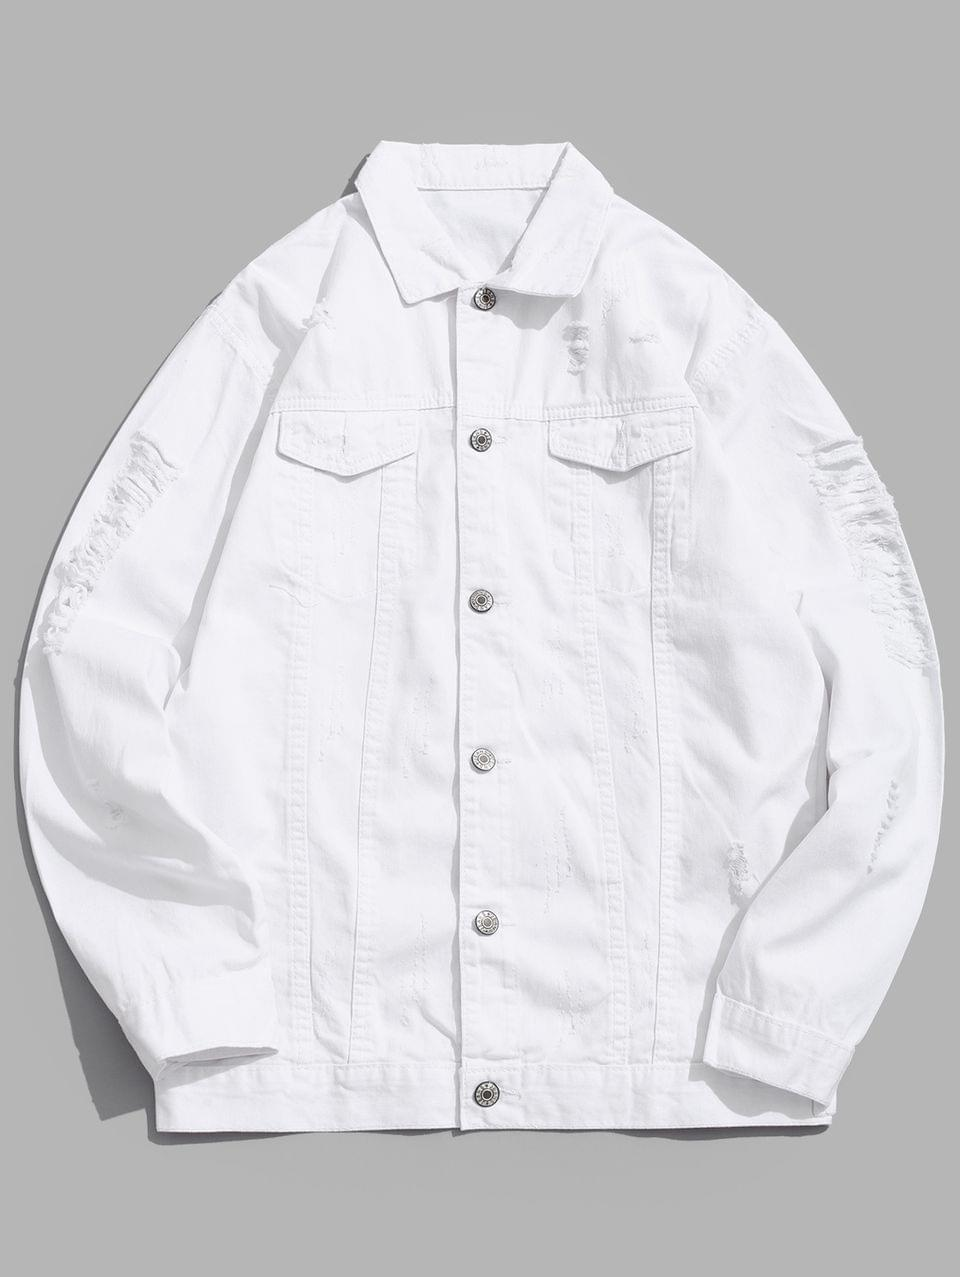 Men's Solid Color Ripped Denim Jacket - White Xs